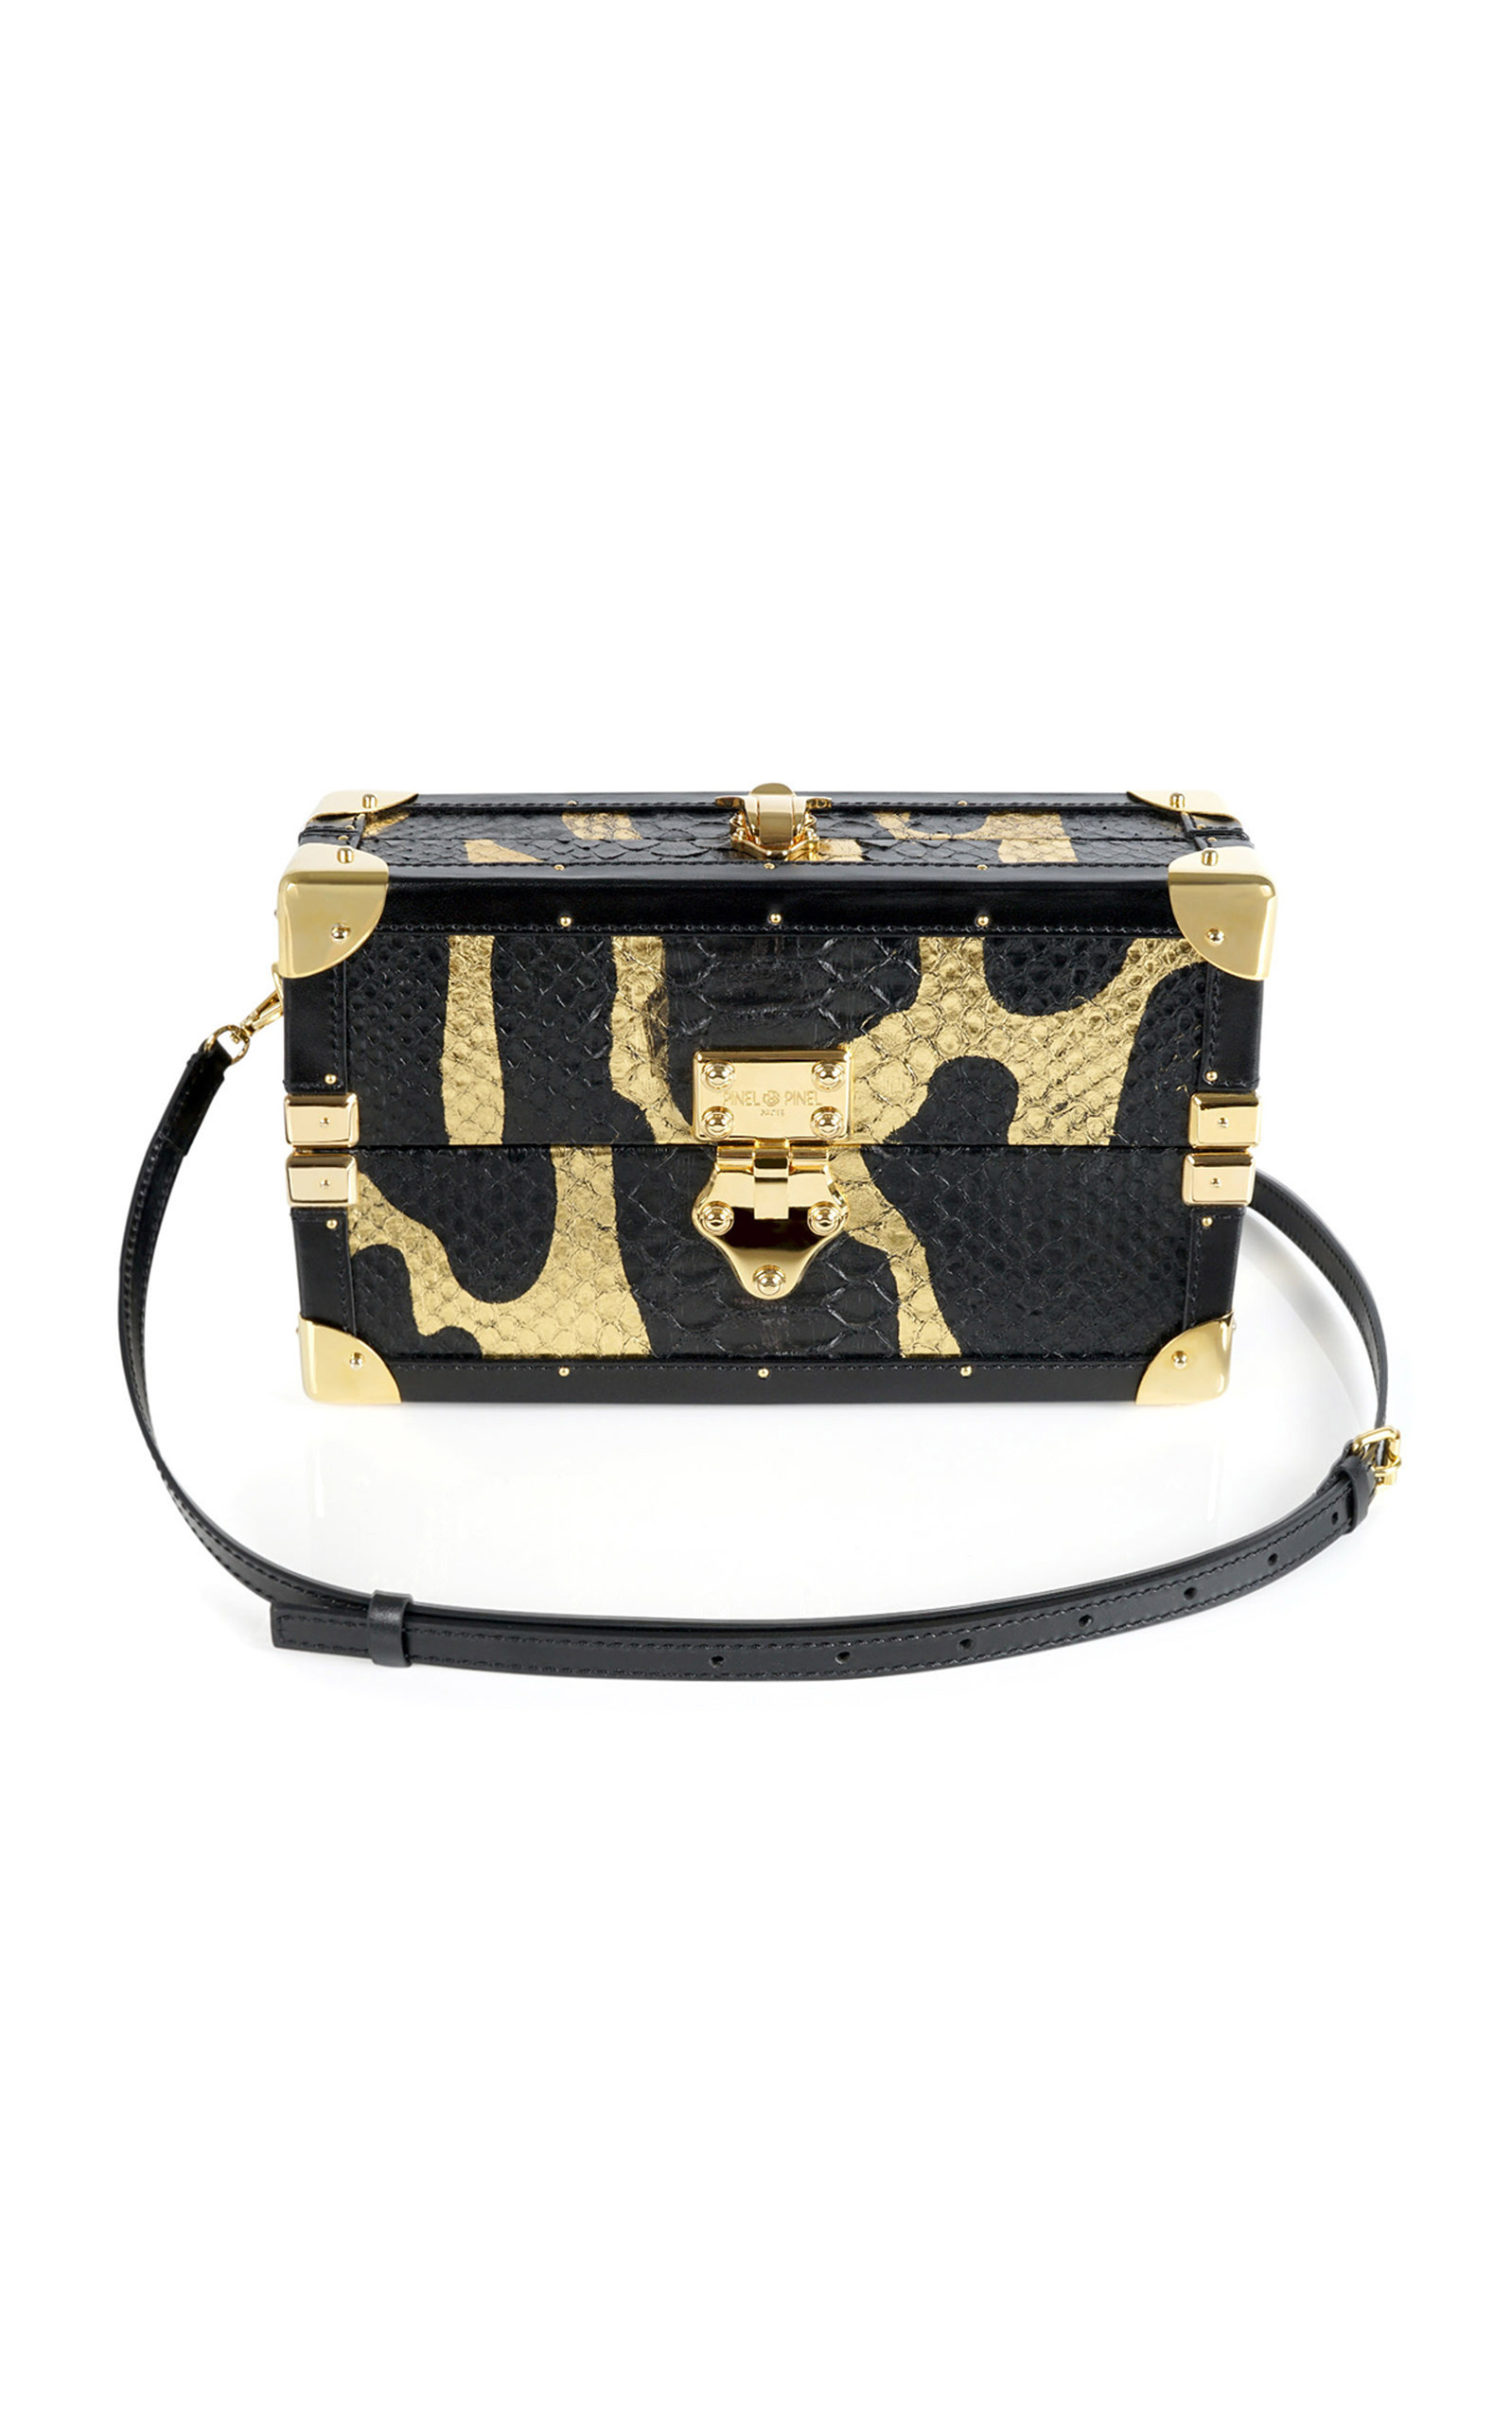 Mini Malle Python Trunk By Pinel Et